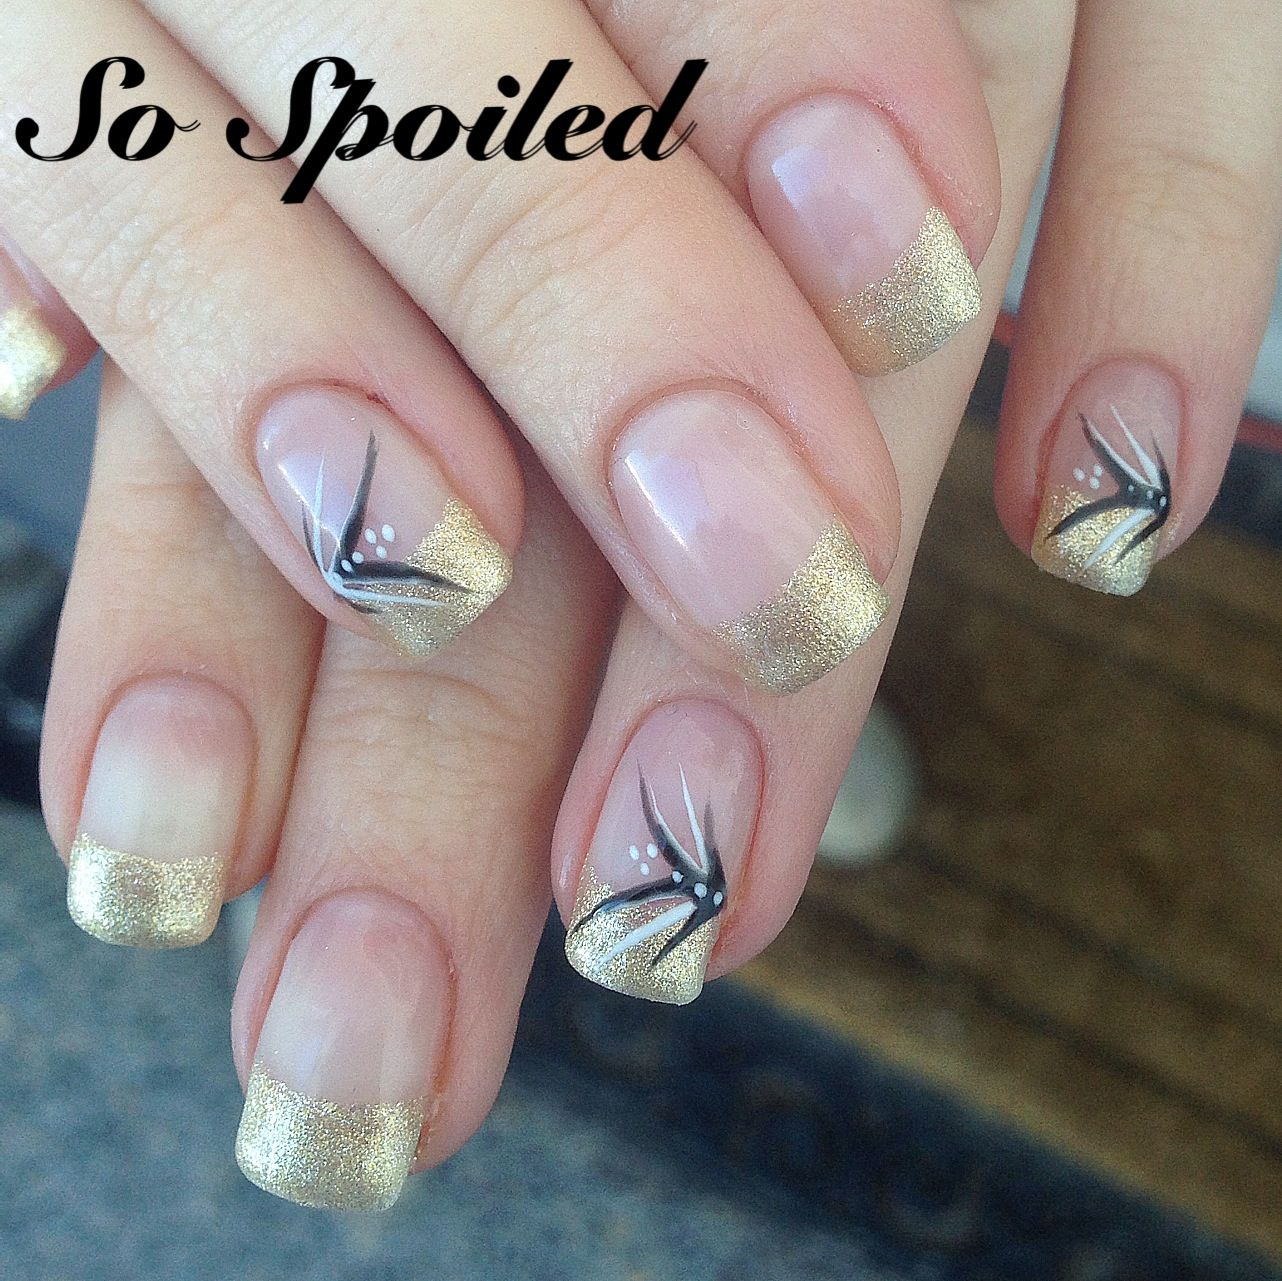 gel nail designs for fall 2014. bio sculpture gel nail art \u0026 design - gold french tip with black and white accents designs for fall 2014 u